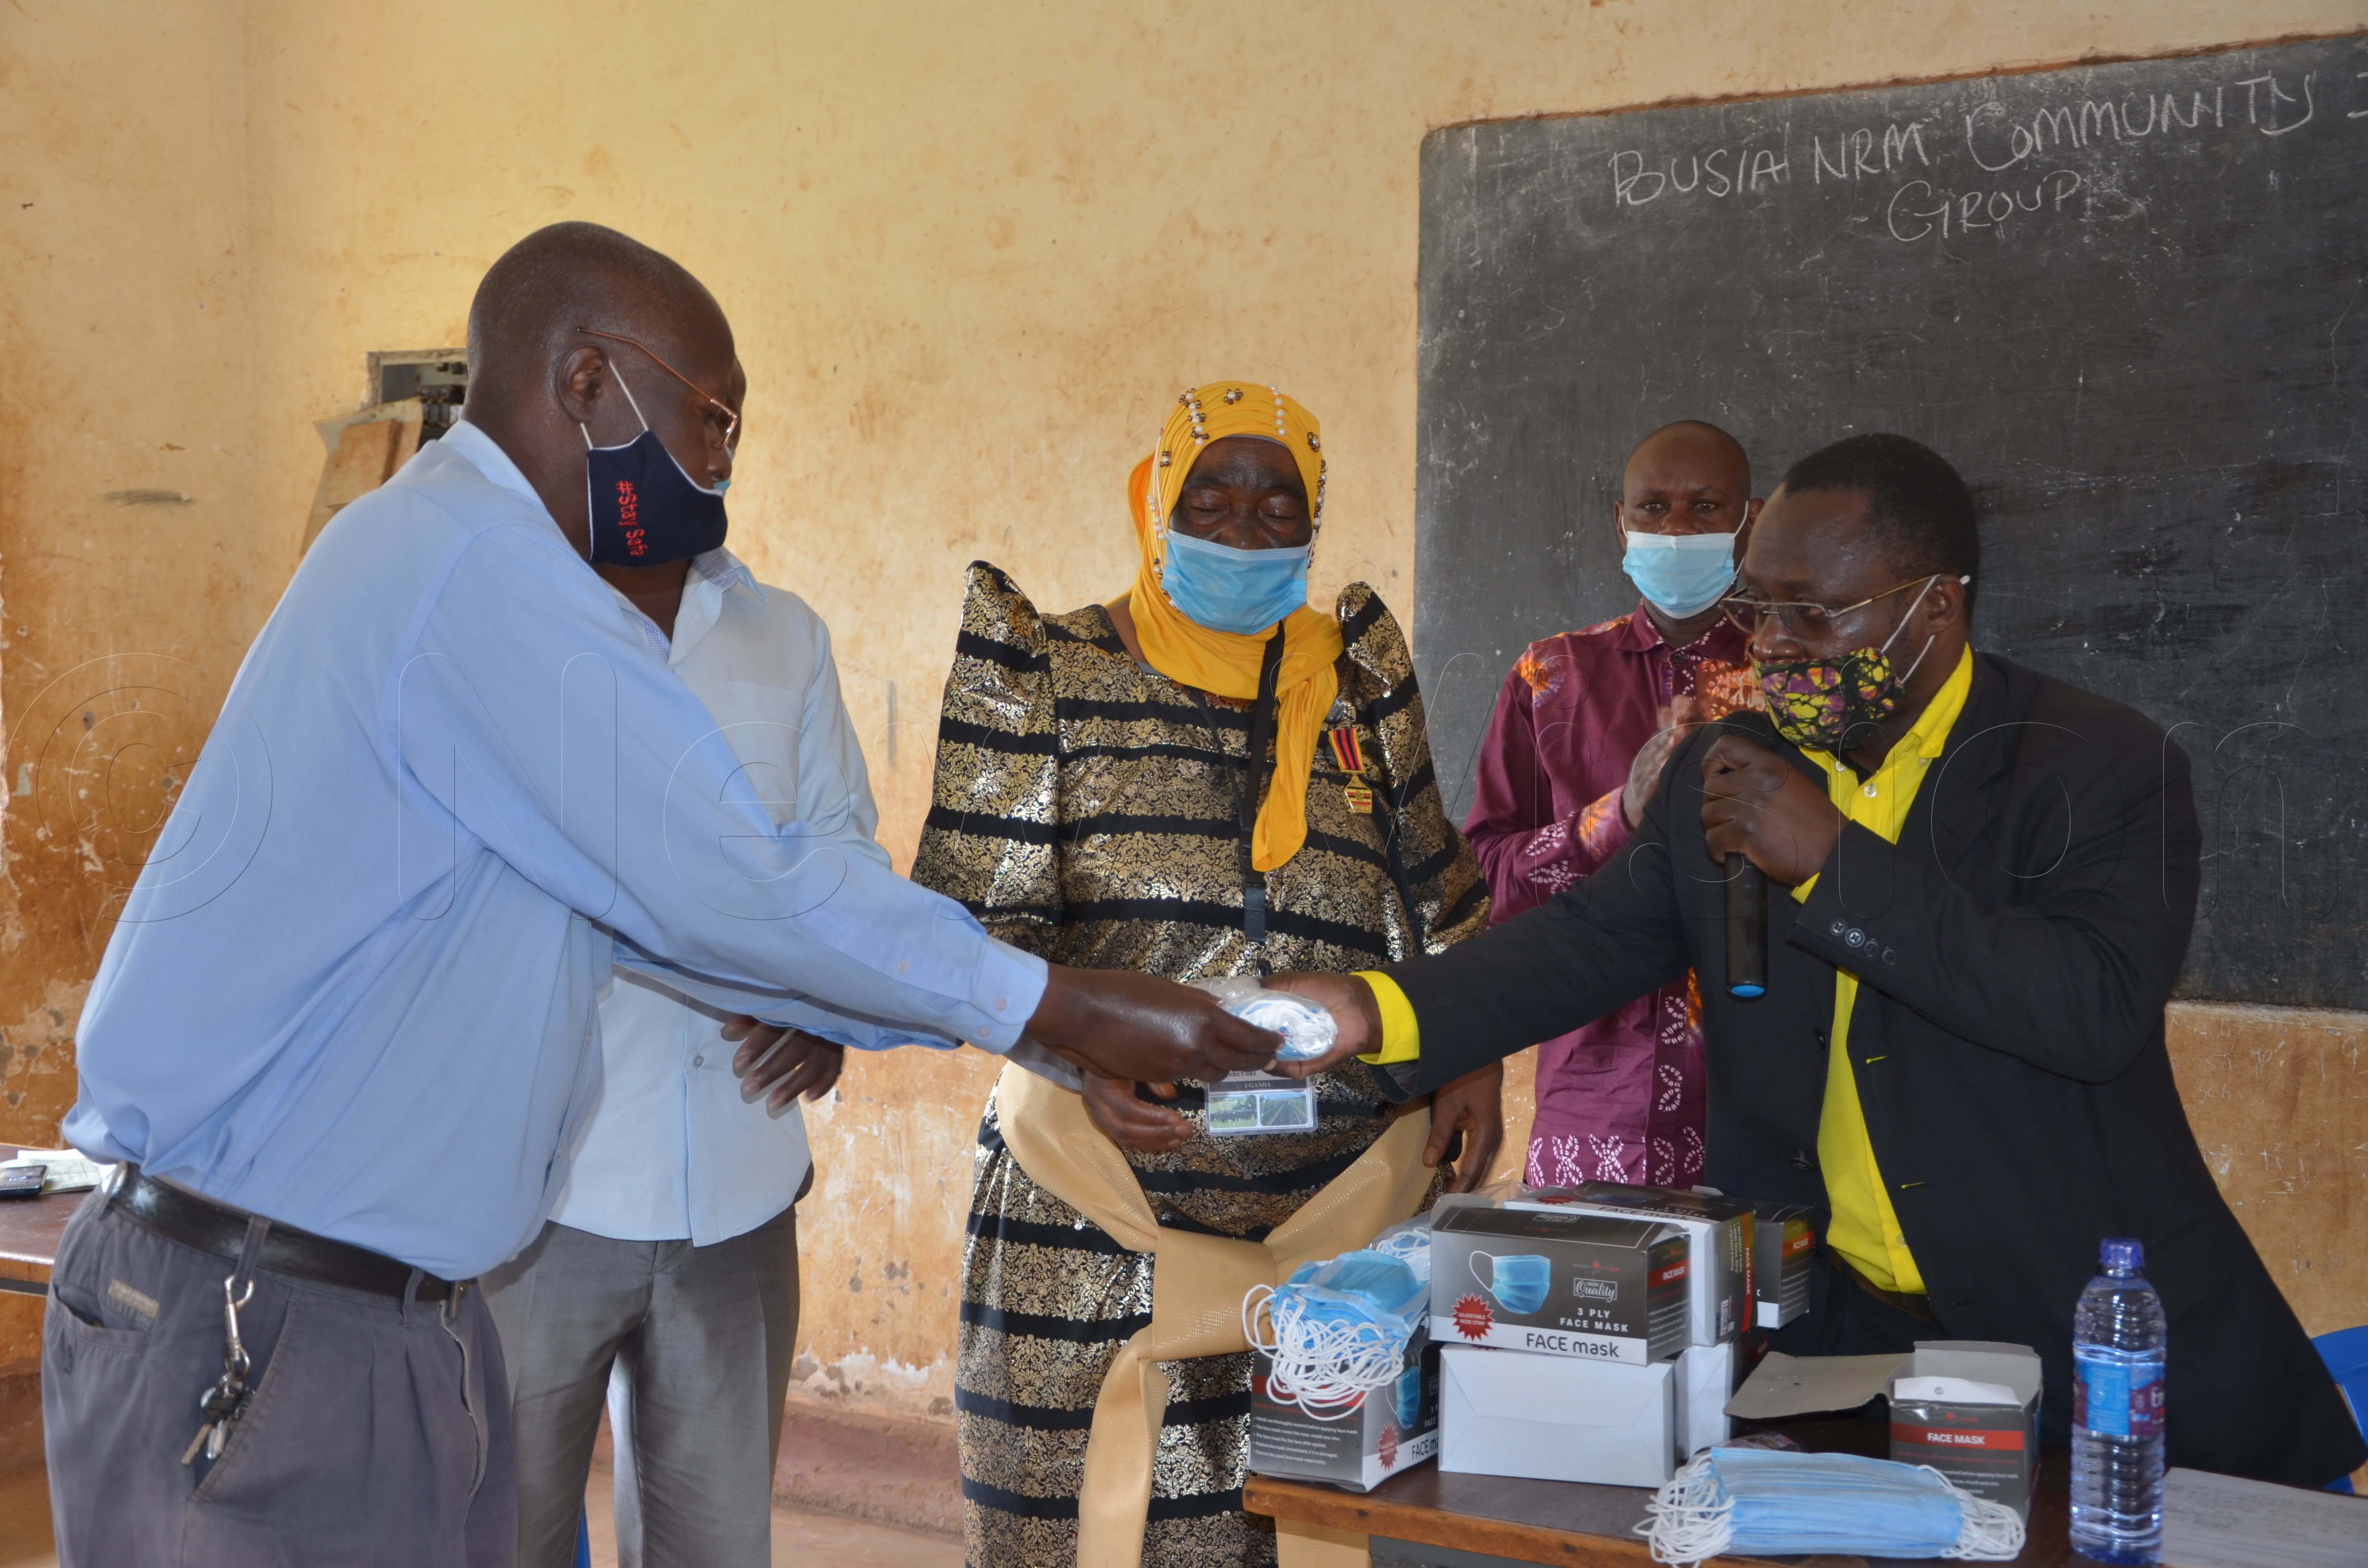 Stephen Mugeni Wasike LC5 Busia(right) handing over face masks to George Barasa LC1 Nangwe shops village